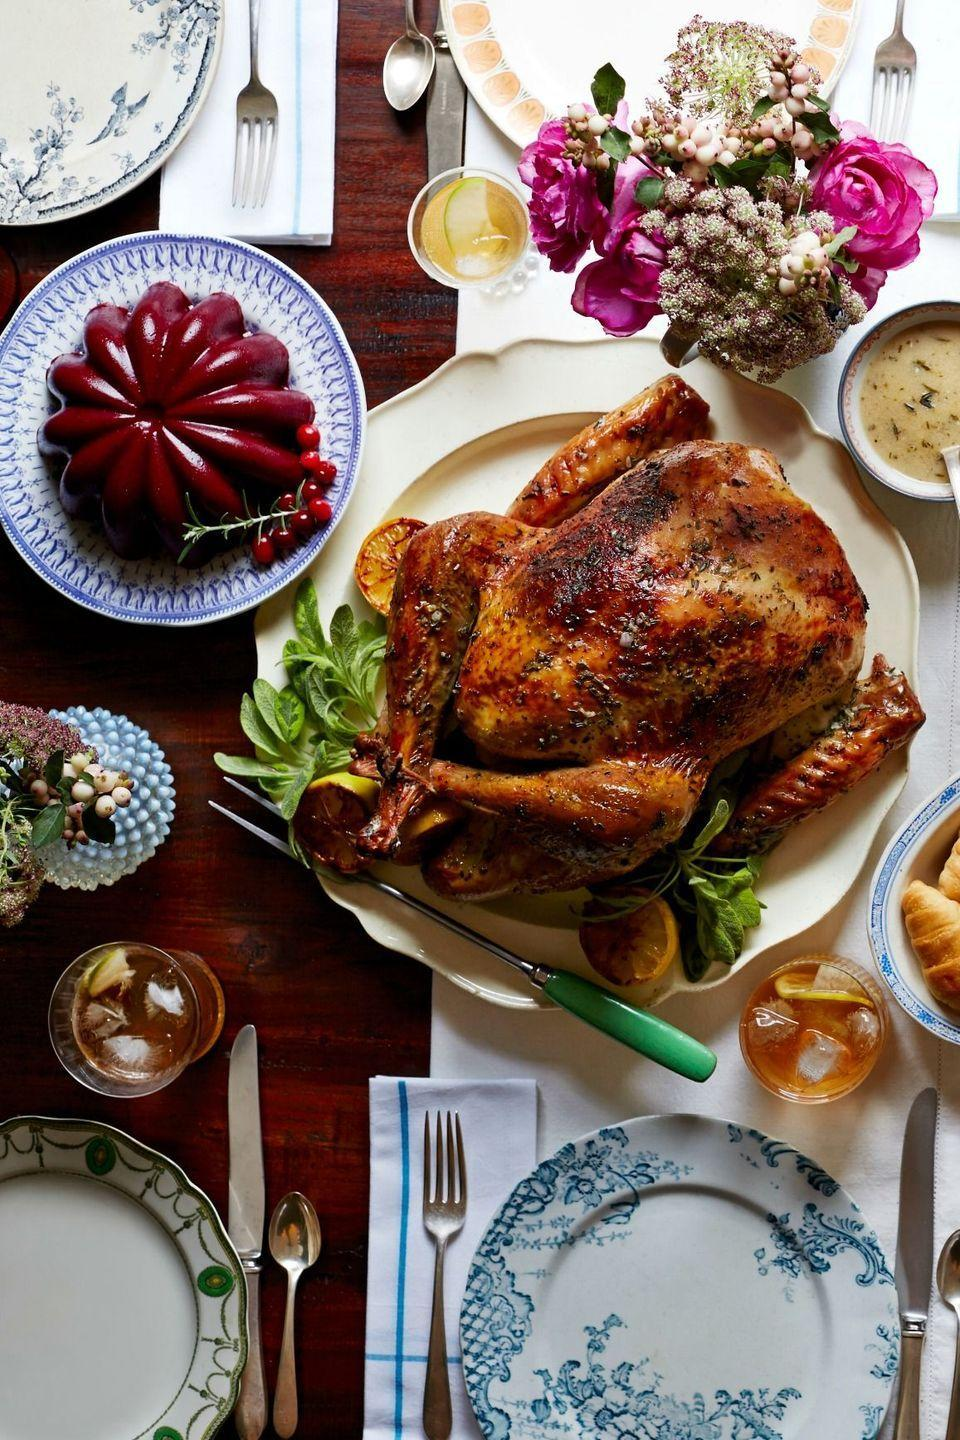 <p>O Thou, whose hand hath brought us <br>Unto this joyful day, <br>Accept our glad thanksgiving, <br>And listen as we pray.<br></p>